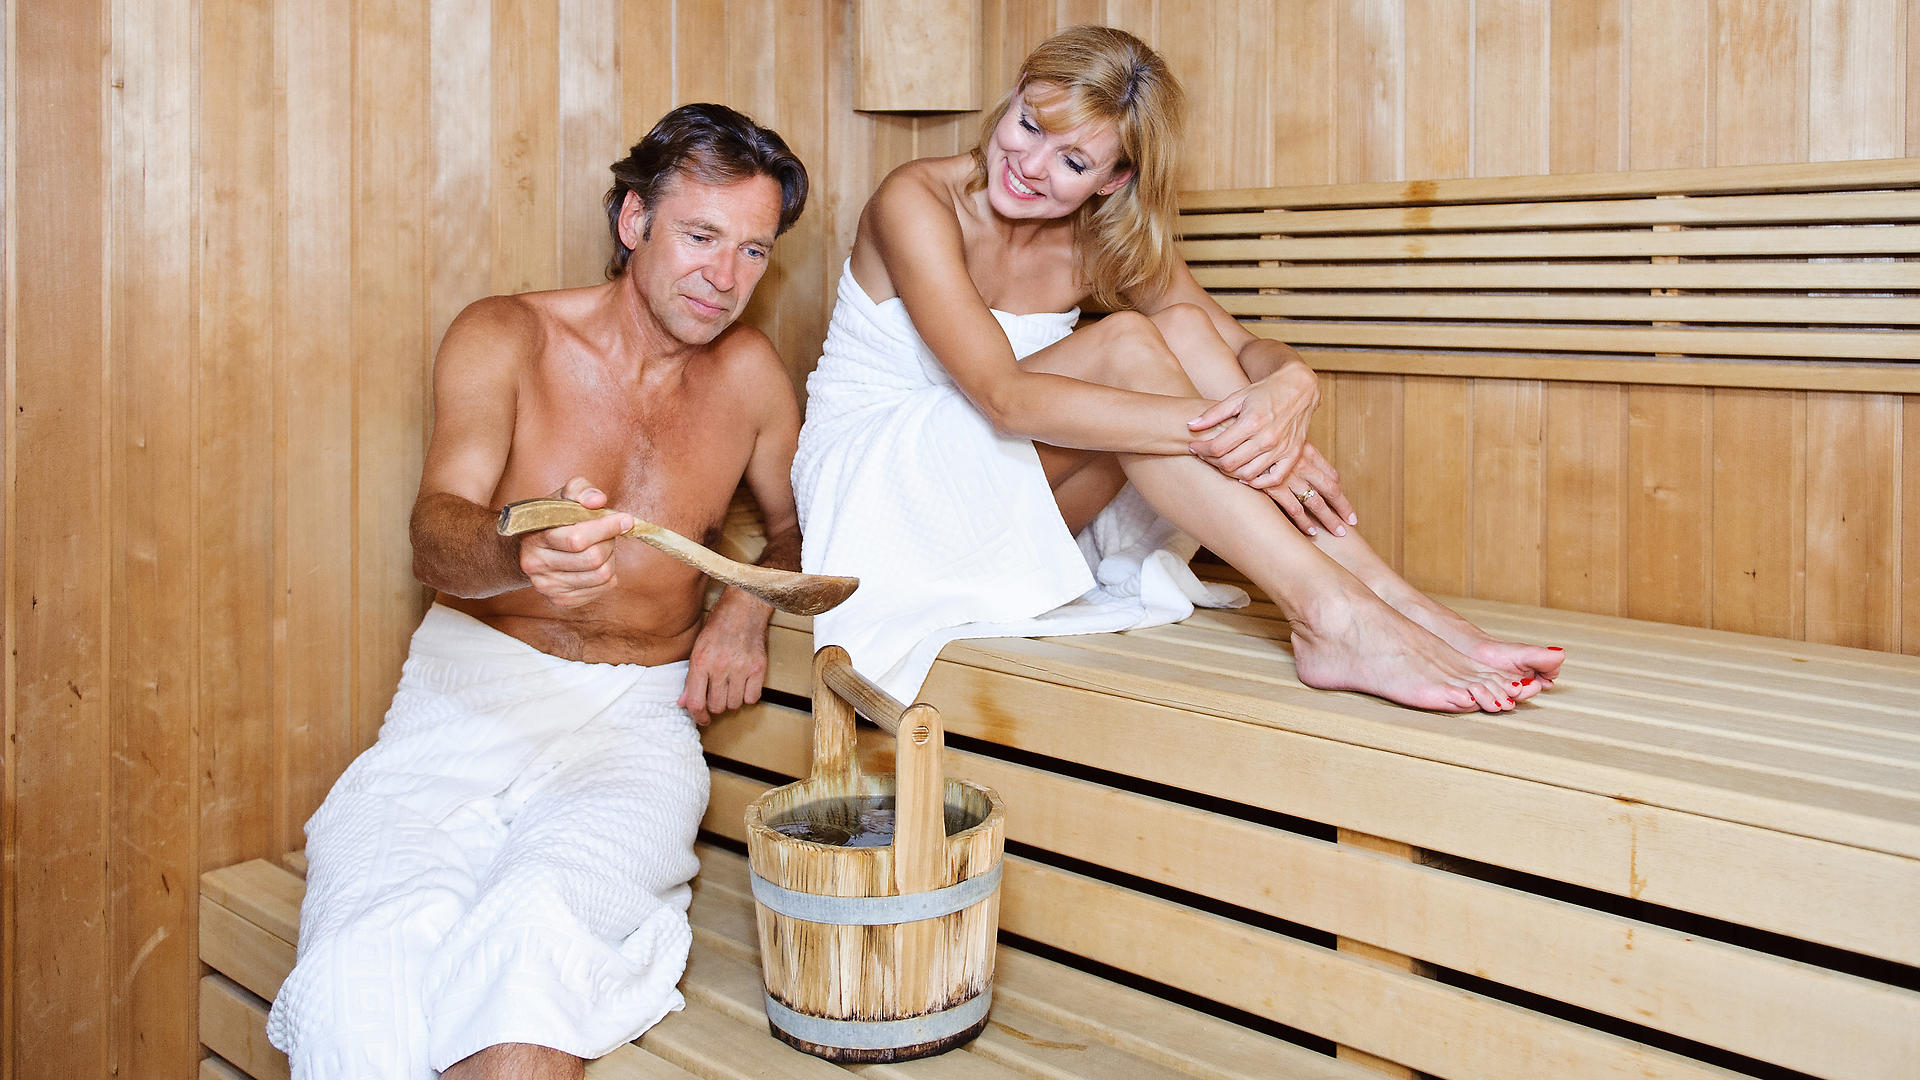 Hd_arka-medical-spa-sauna